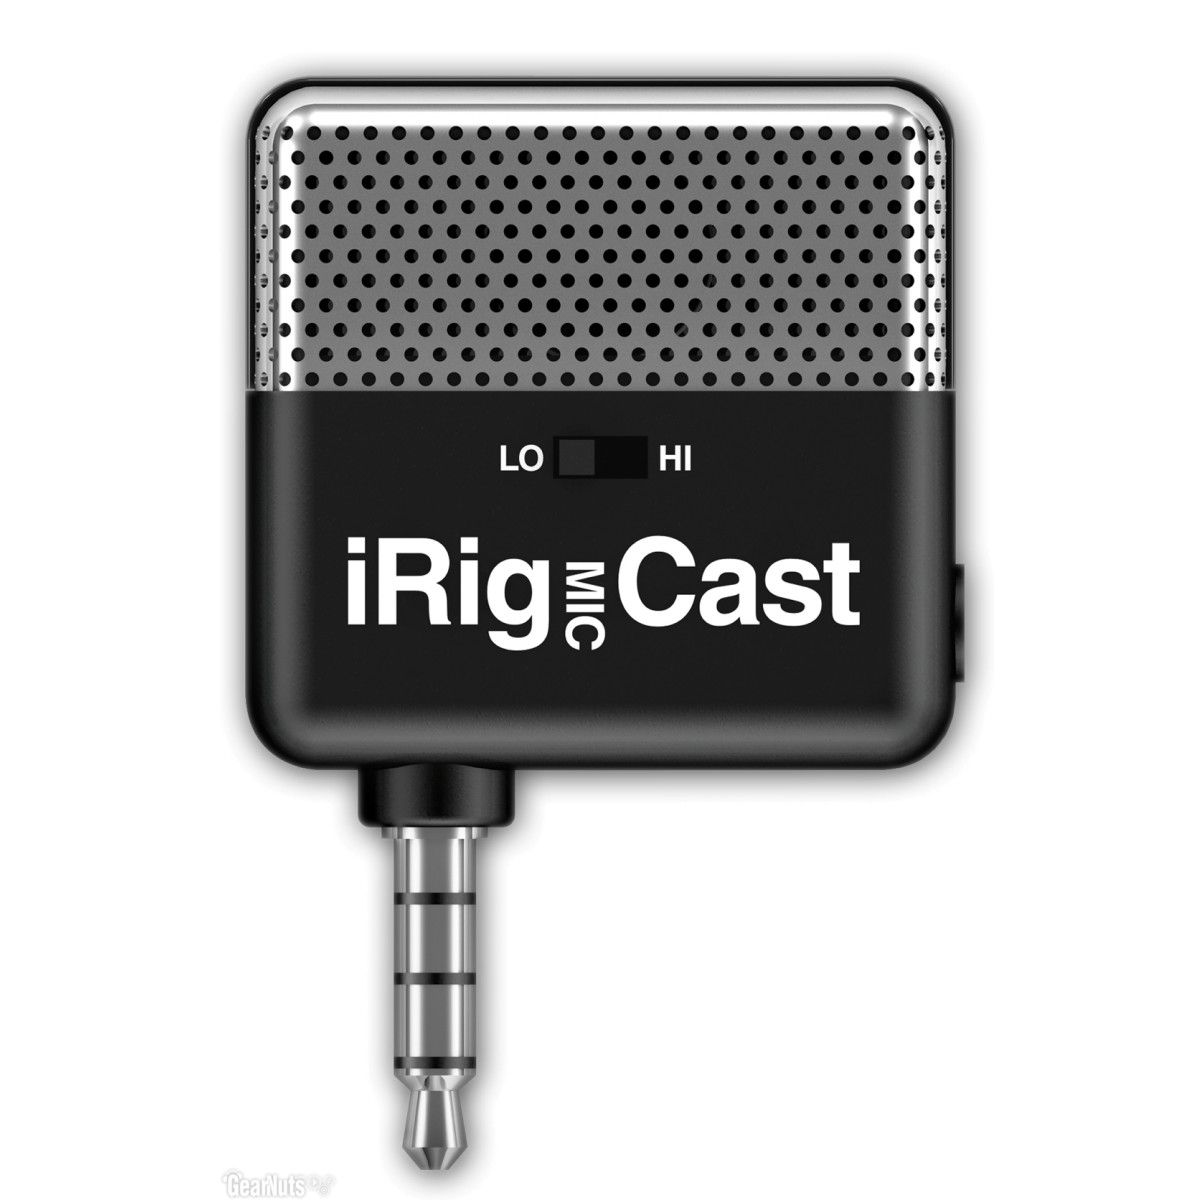 Interface IRIG Mic Cast IK Multimedia - Microfone Ultracompacto para Dispositivos Móveis  - TranSom Áudio e Música